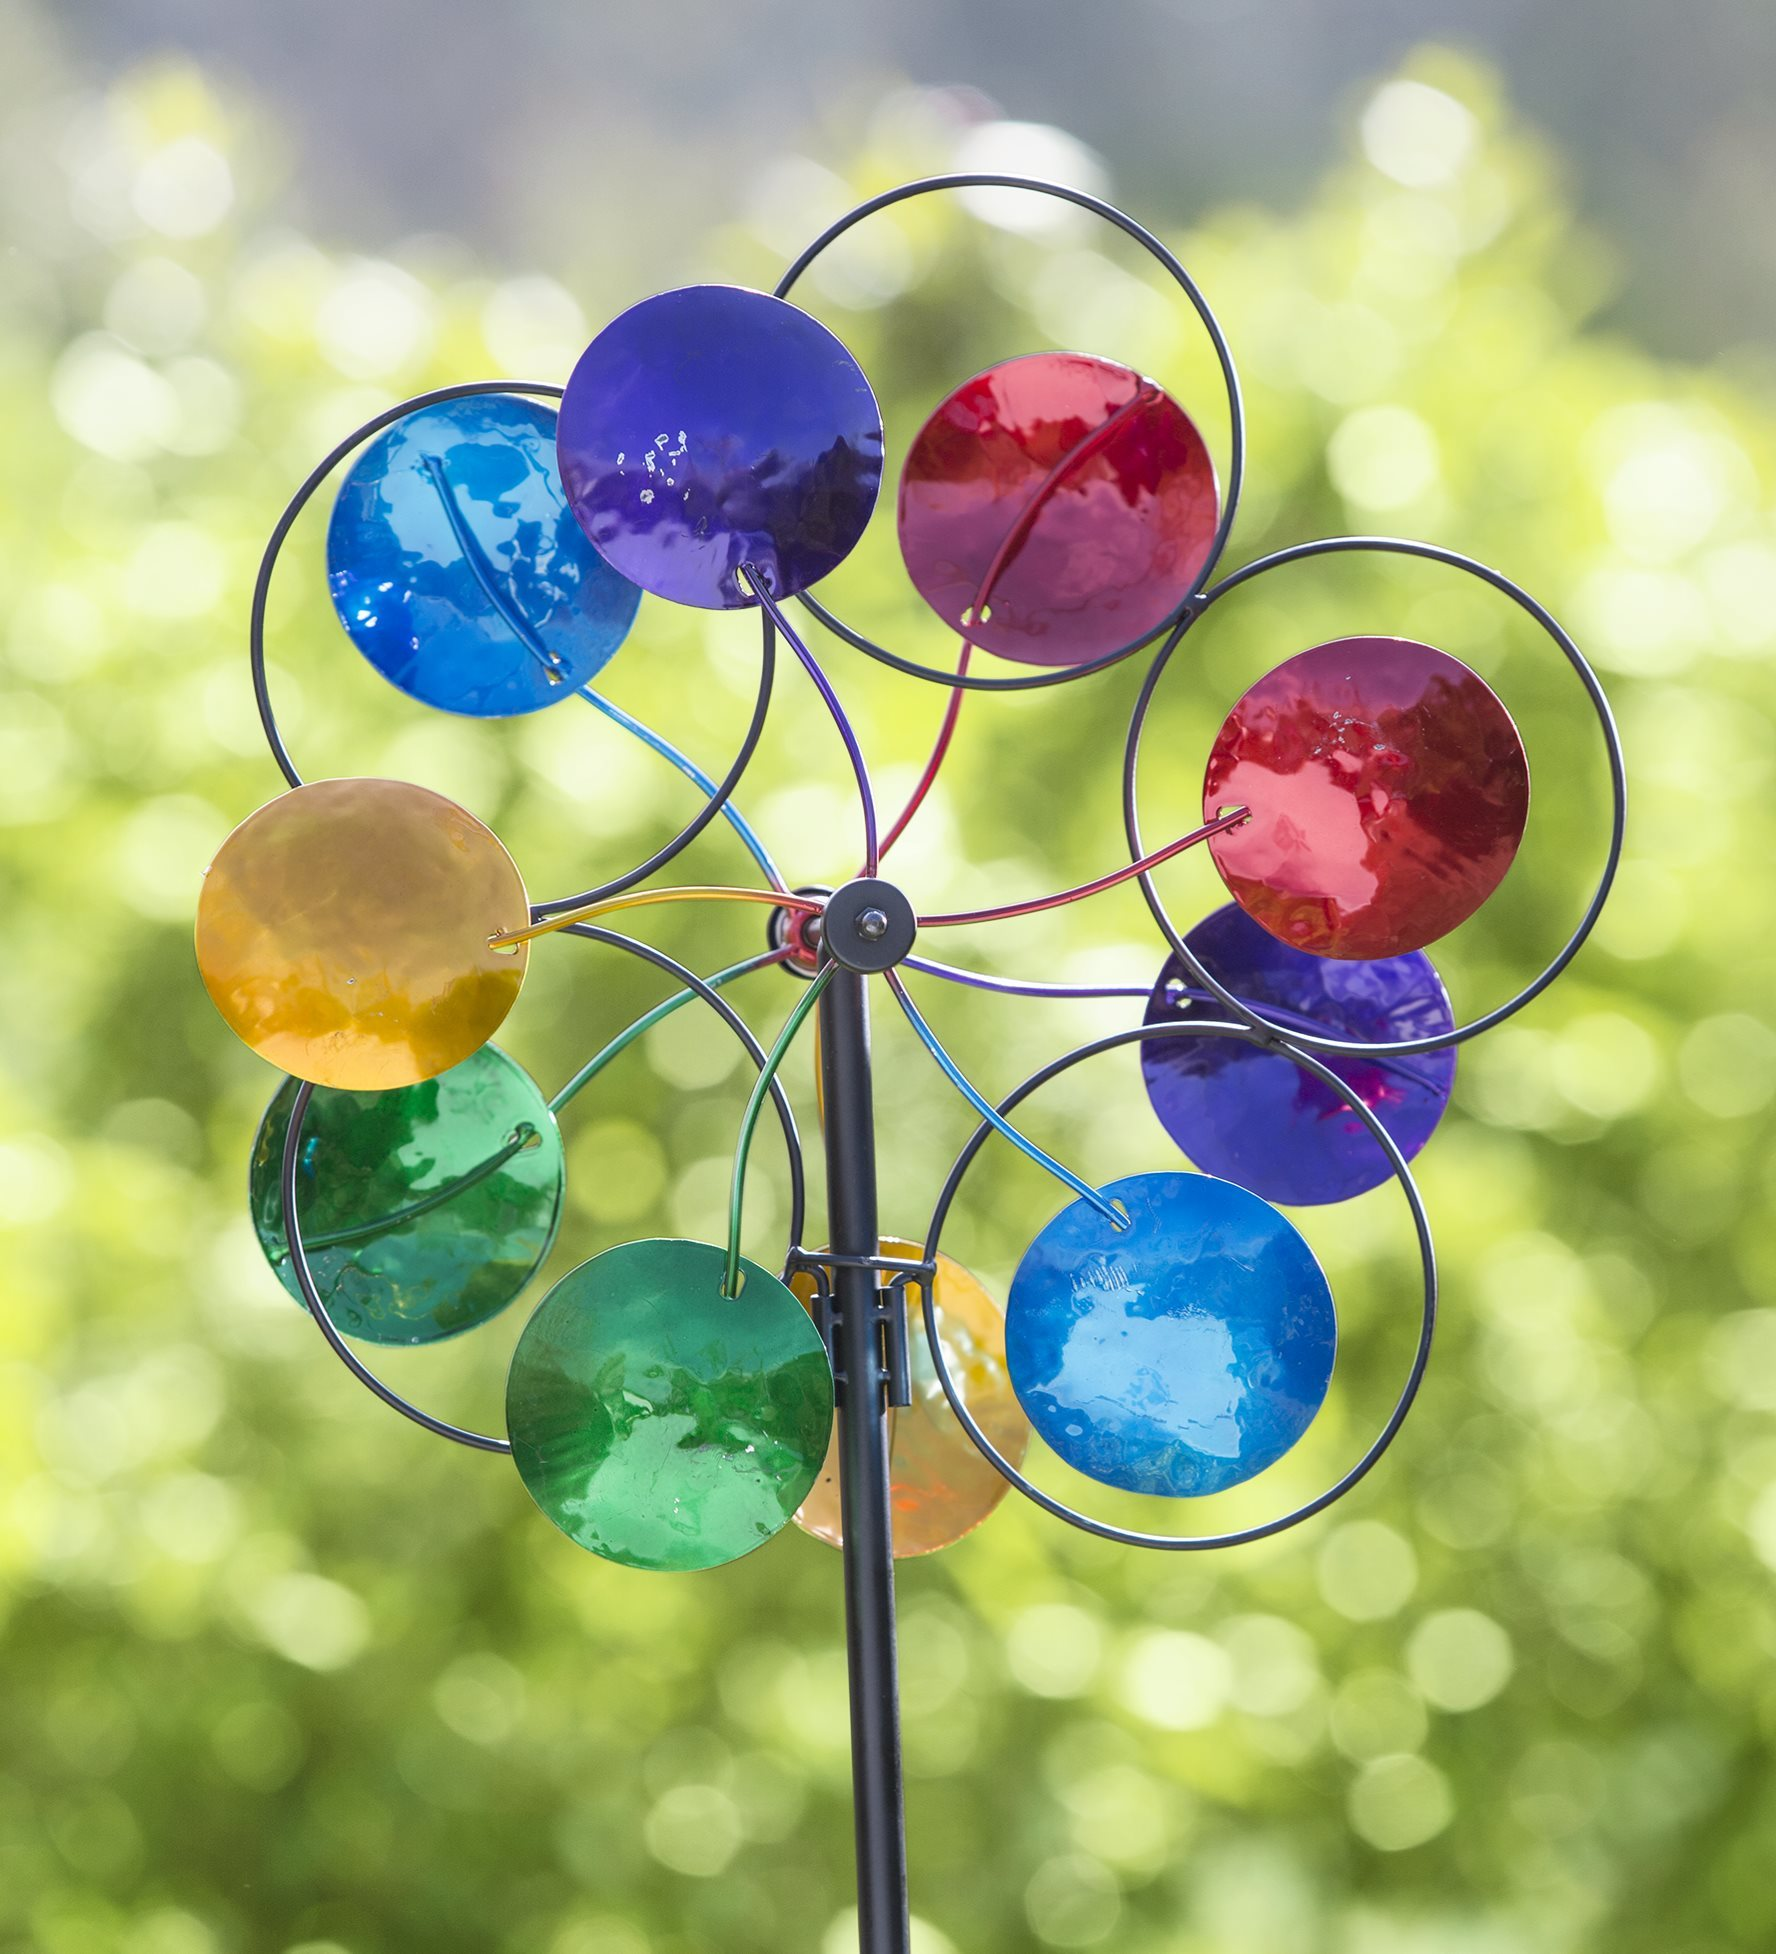 Midi Colorful Circles Garden Wind Spinner by Plow & Hearth